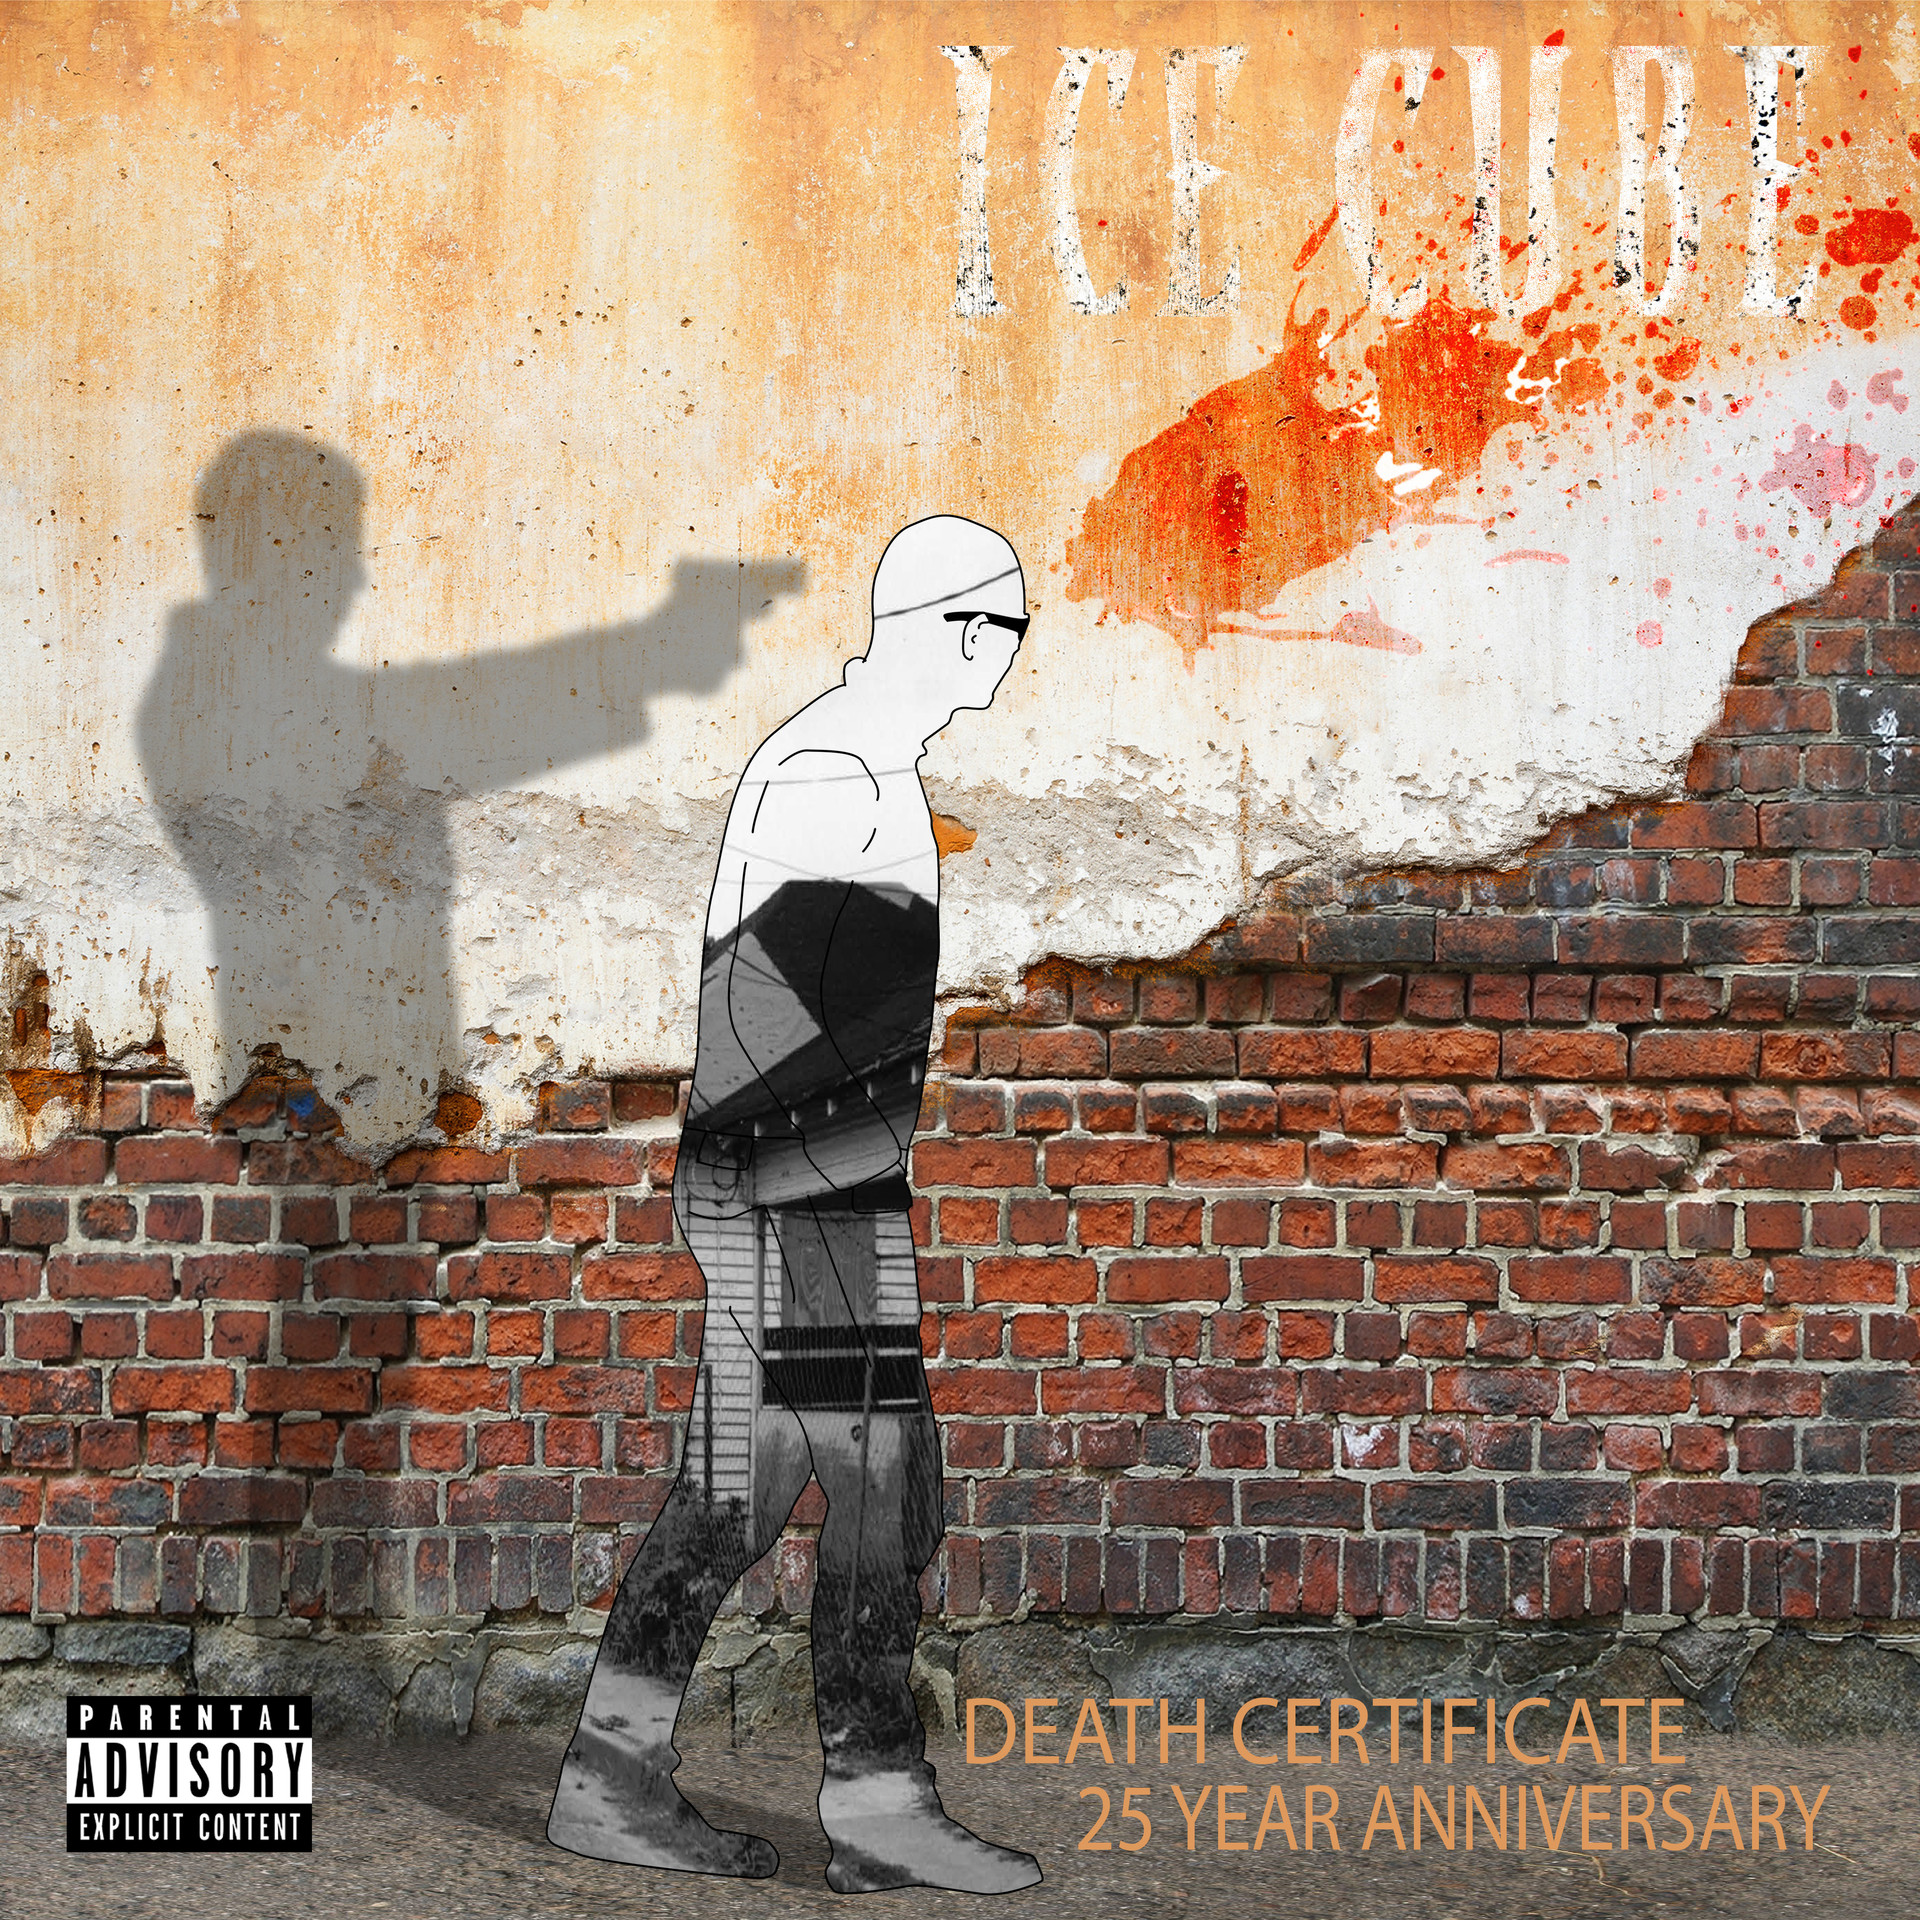 Artstation ice cubes death certificate 25th anniversary re mature content 1betcityfo Choice Image